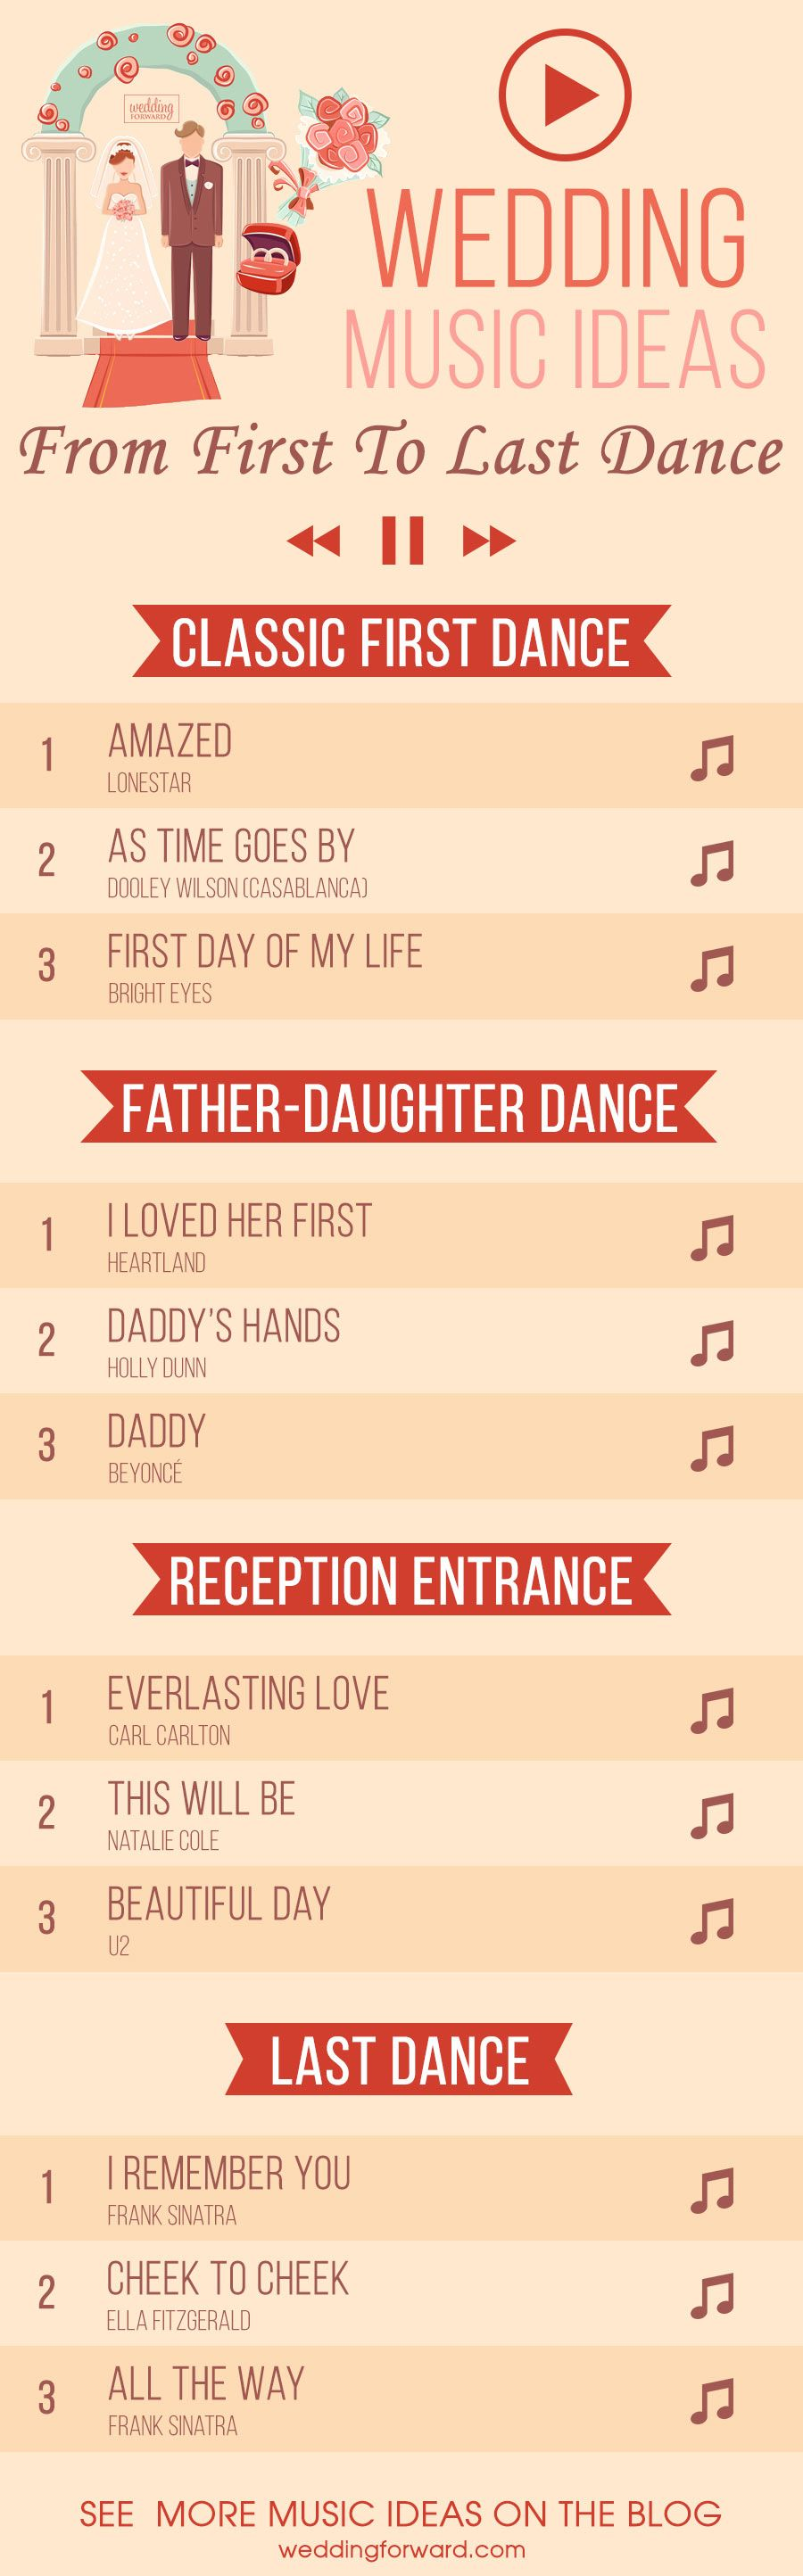 Wedding Music Ideas From-First To Last Dance ❤️ We've put together a few of the best wedding music ideas that will help you with the selection process every part of the wedding day from wedding ceremony, to first song, to the last dance. See more: http://www.weddingforward.com/wedding-music-ideas-first-last-dance/ #wedding #music #playlist